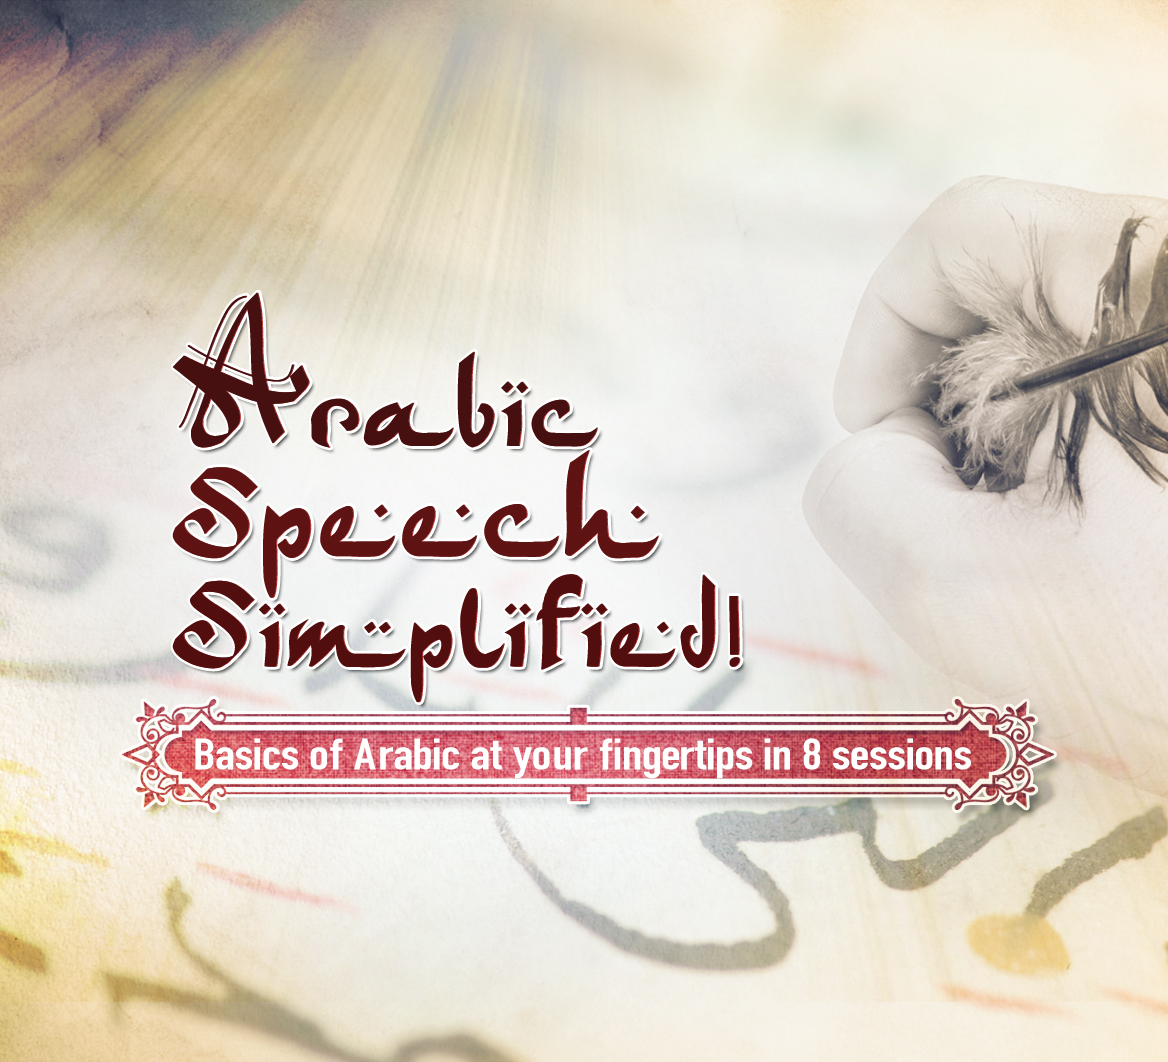 Arabic Speech Simplified!